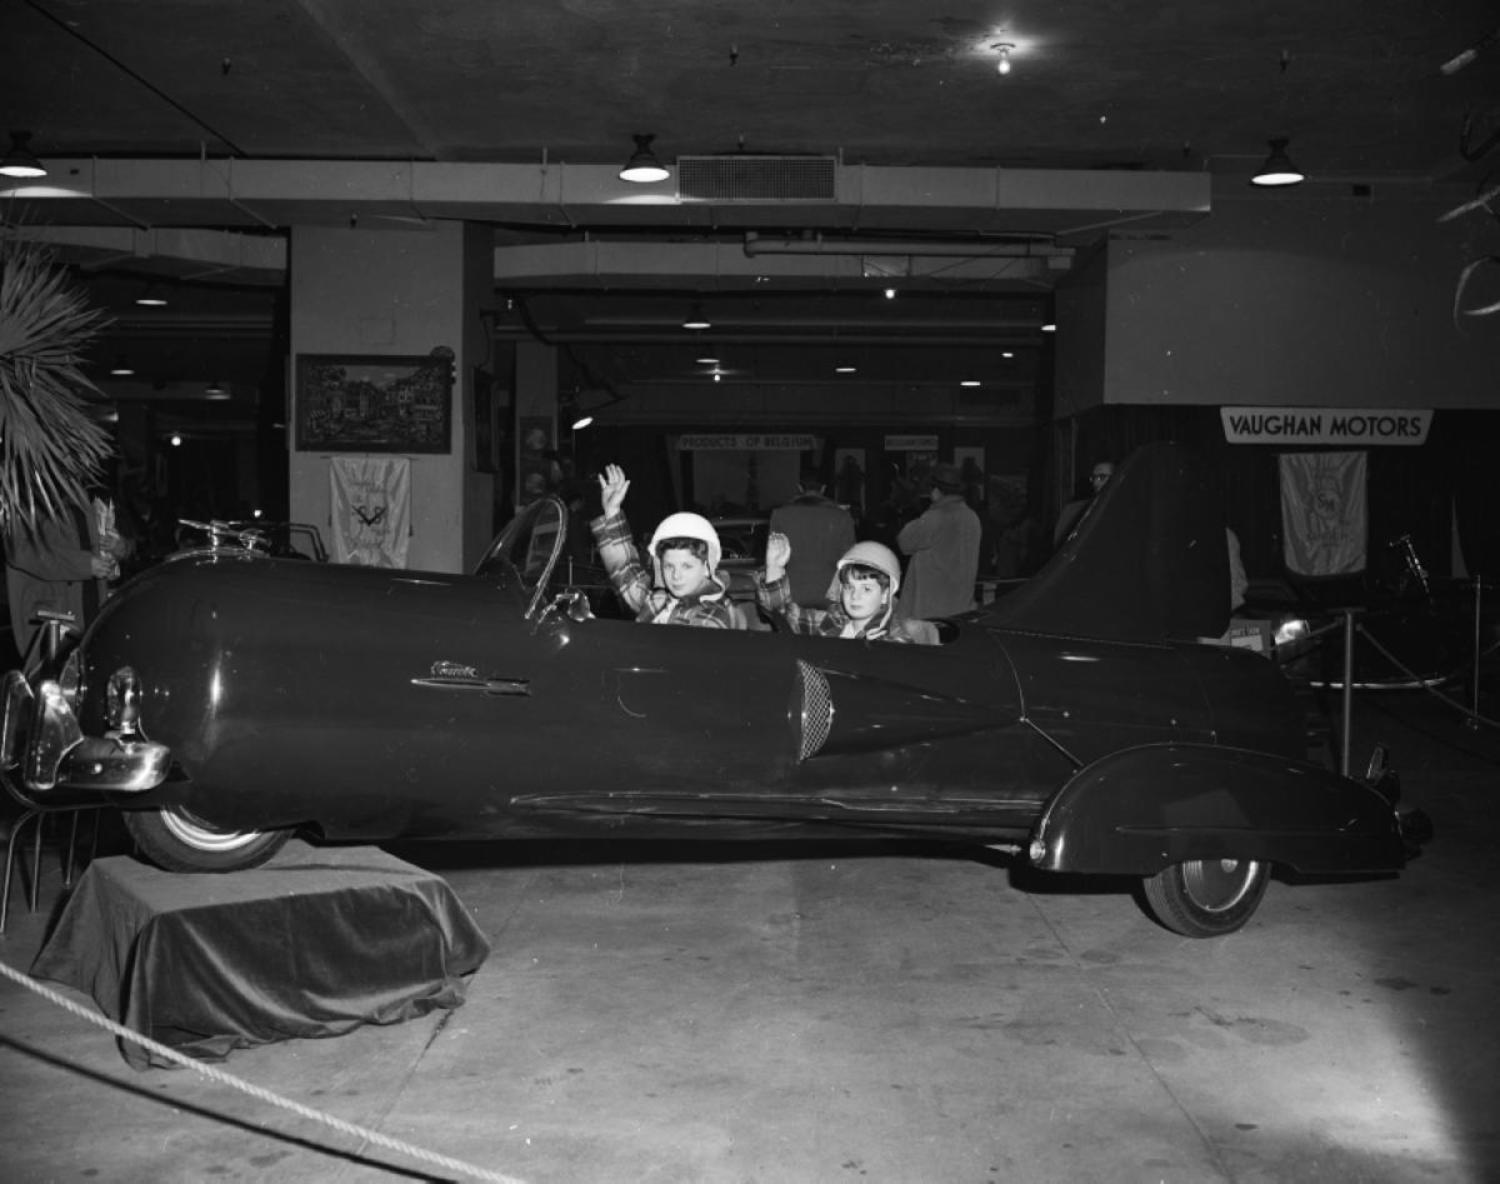 Wings and space-age car design were all the rage in the 1950s.